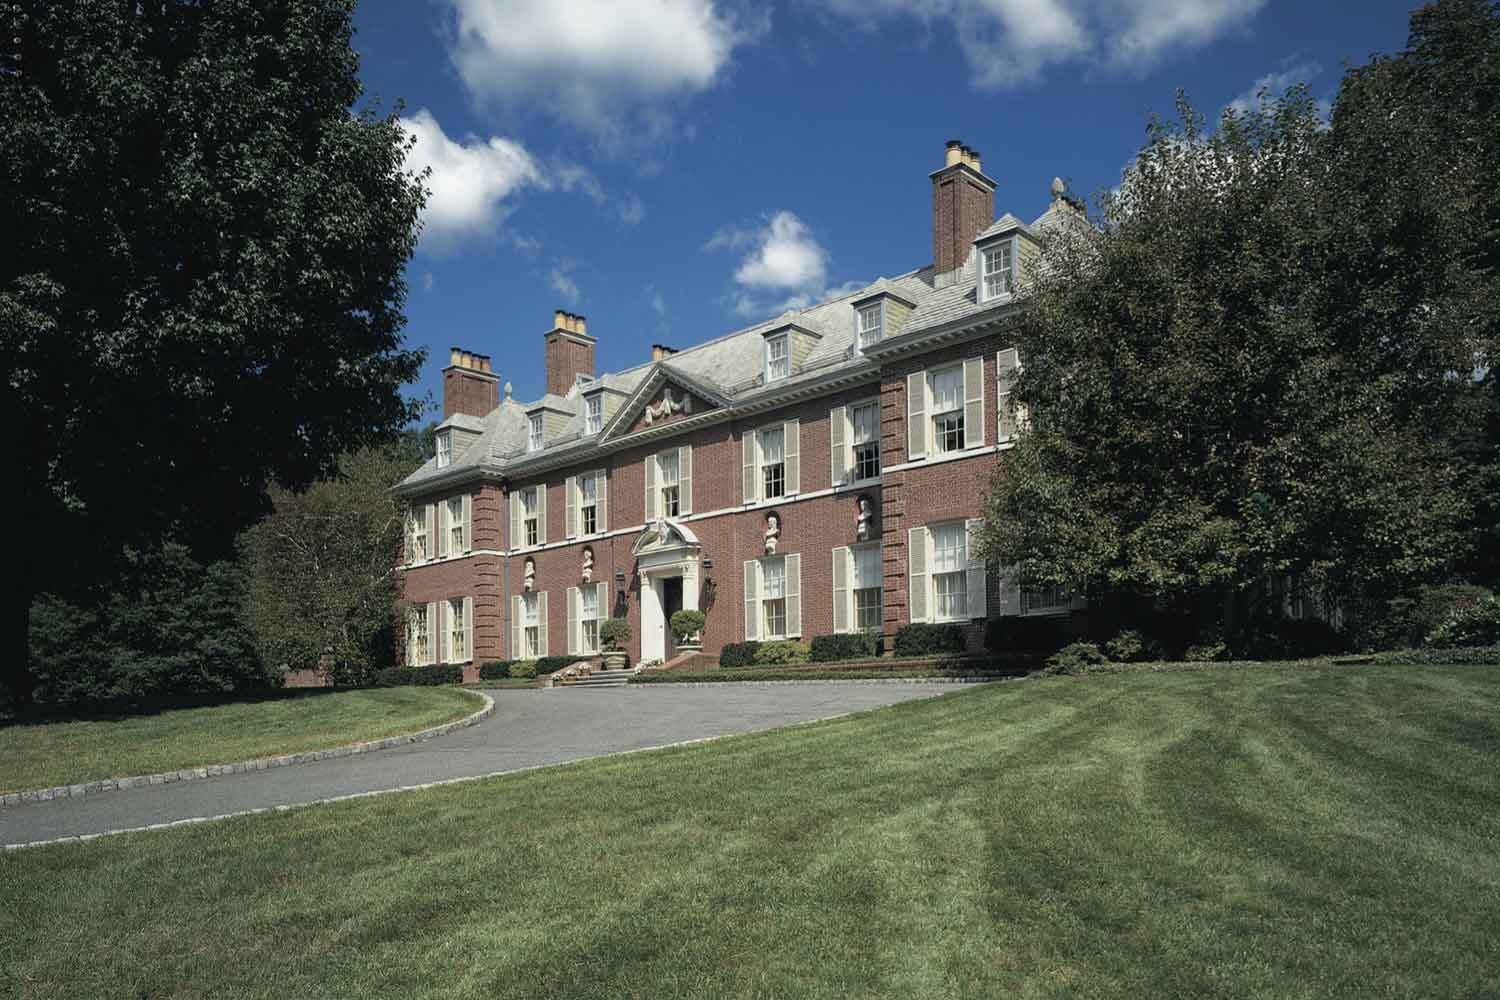 <b>Peapack, New Jersey</b><br/><i>5 Bedrooms, 18,396 sq. ft.</i><br/>Georgian-style estate and horse farm